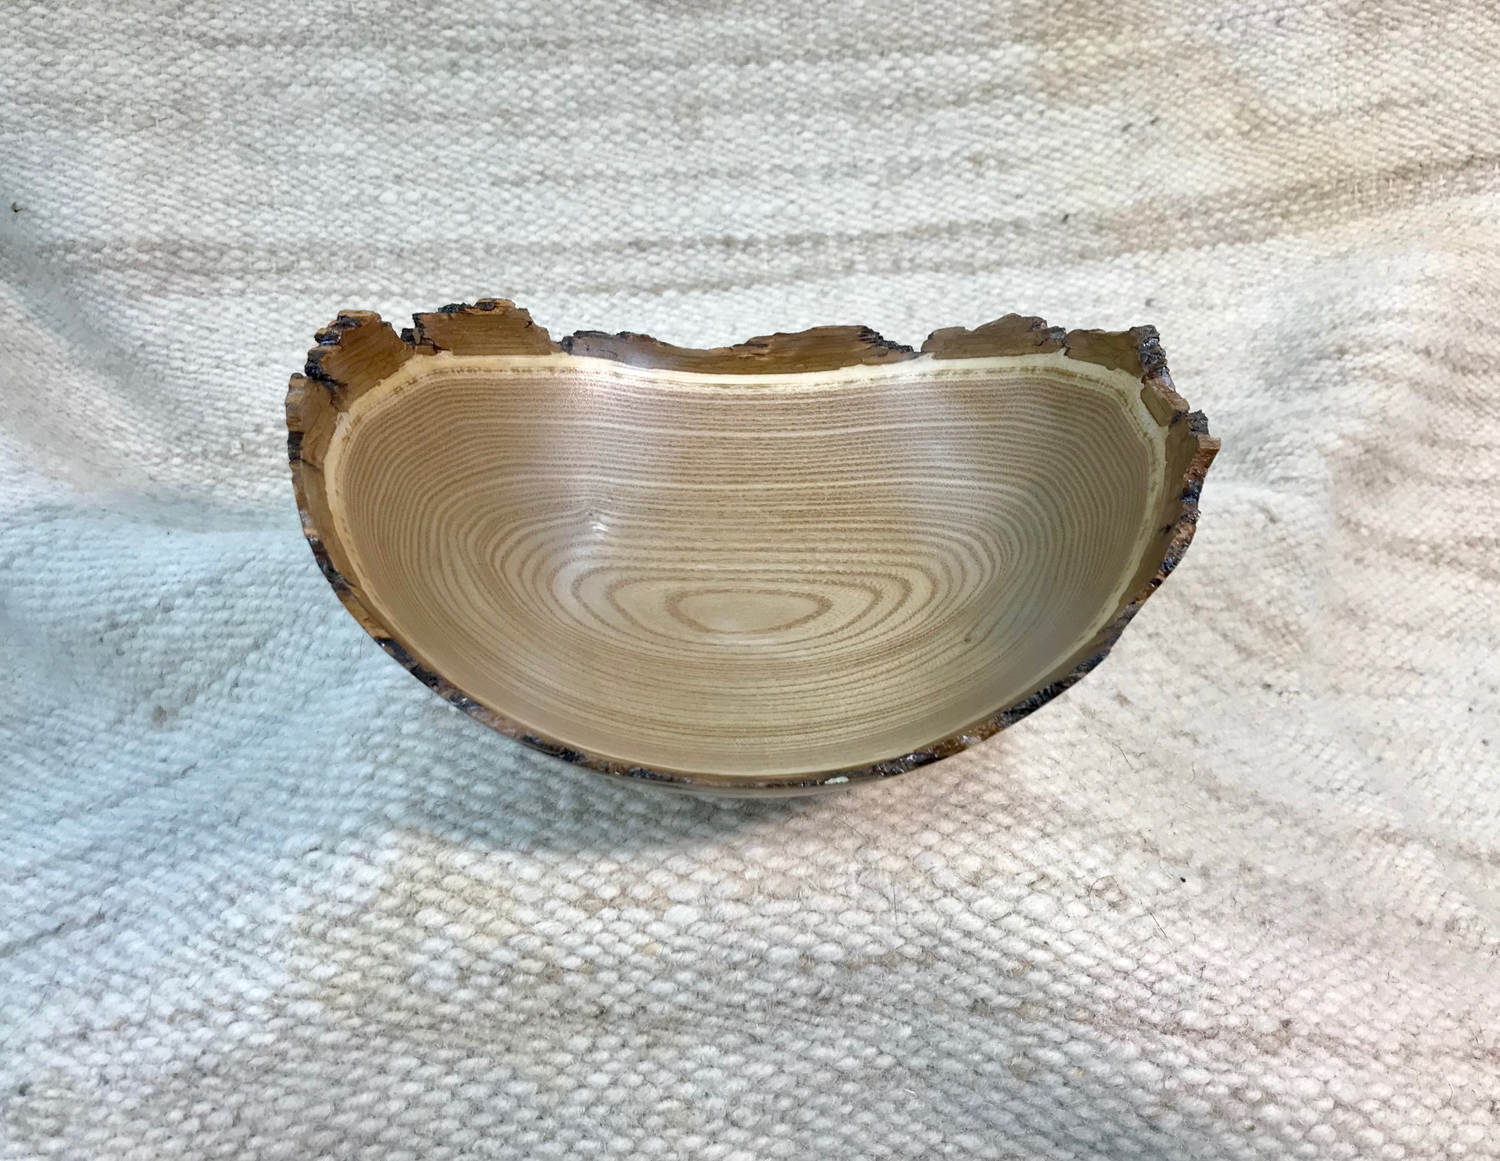 Tulip Wood (Yellow Poplar), natural rim with bark, 8.5x7x3.5 inches by Sandy Renna